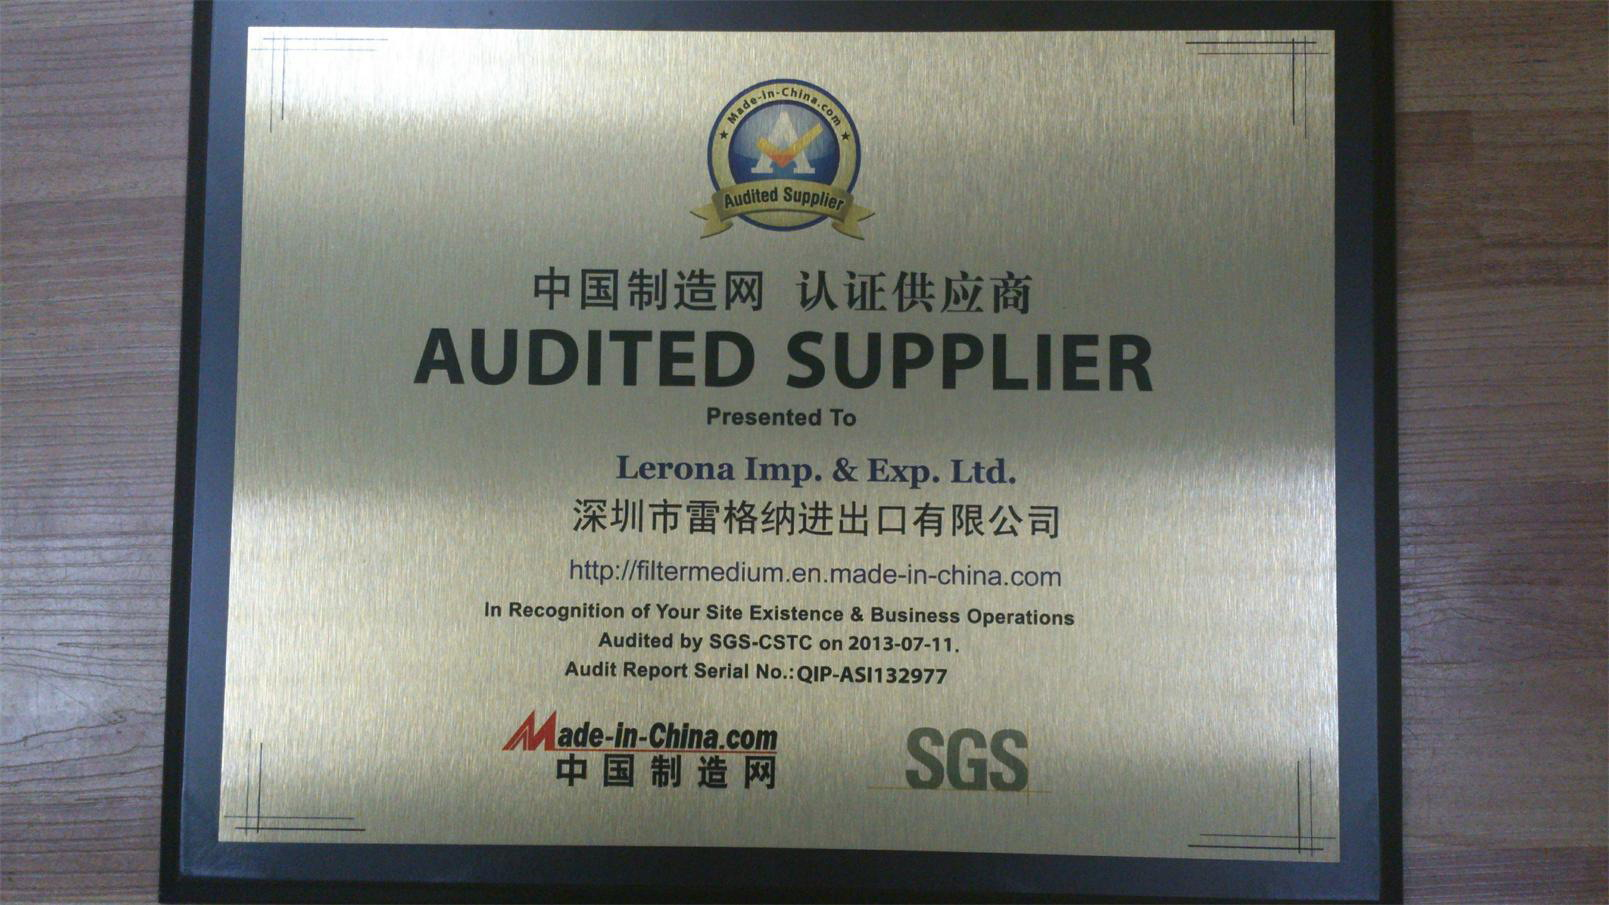 Audited suppliers by SGS